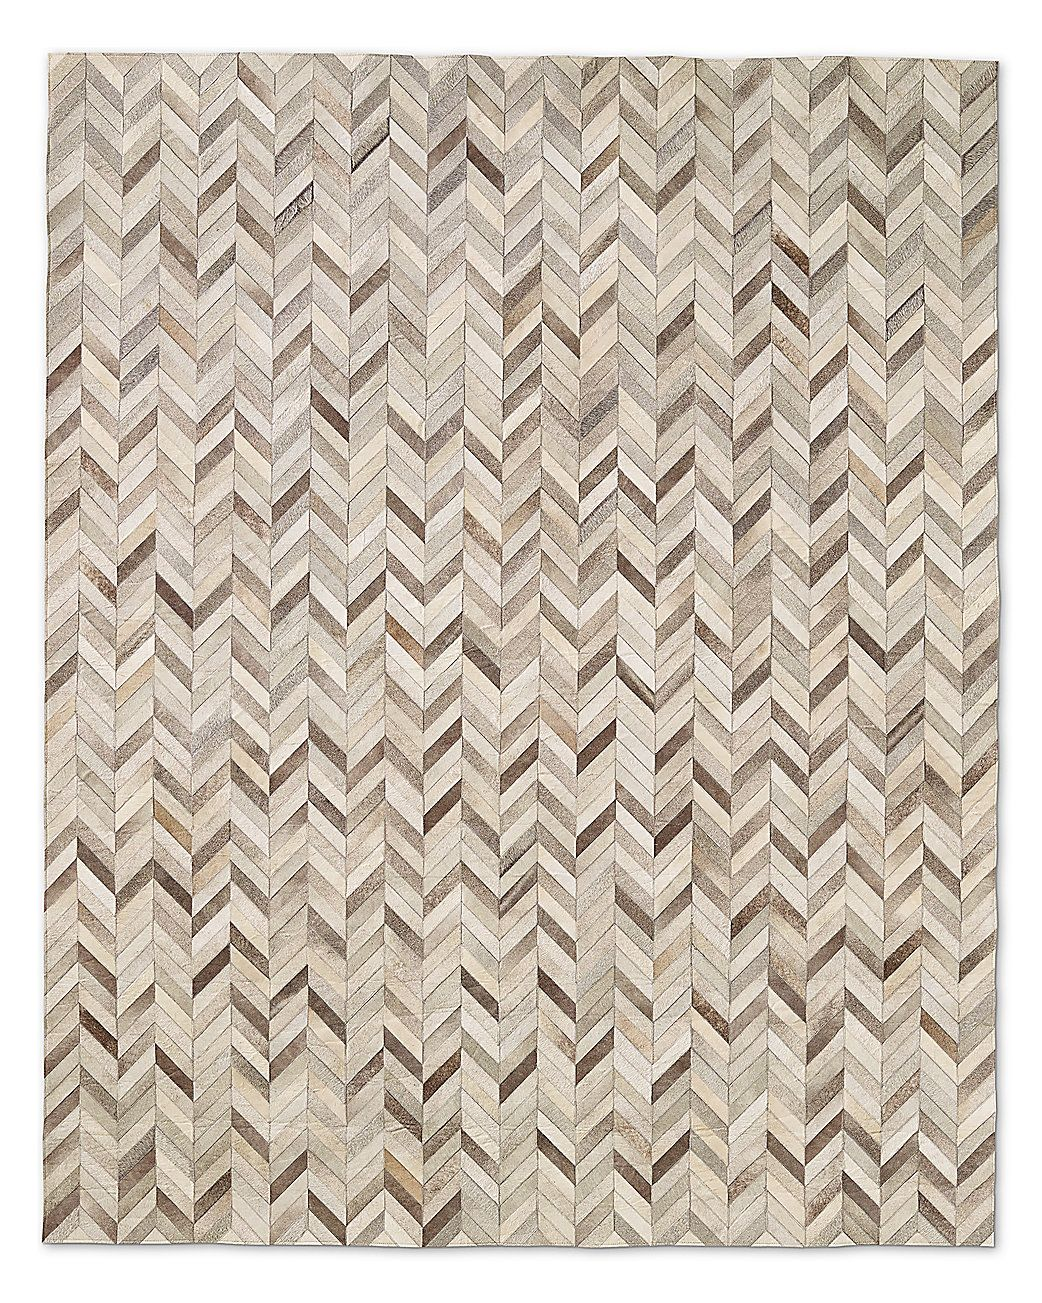 My Favorite Rug Chevron Cowhide Grey